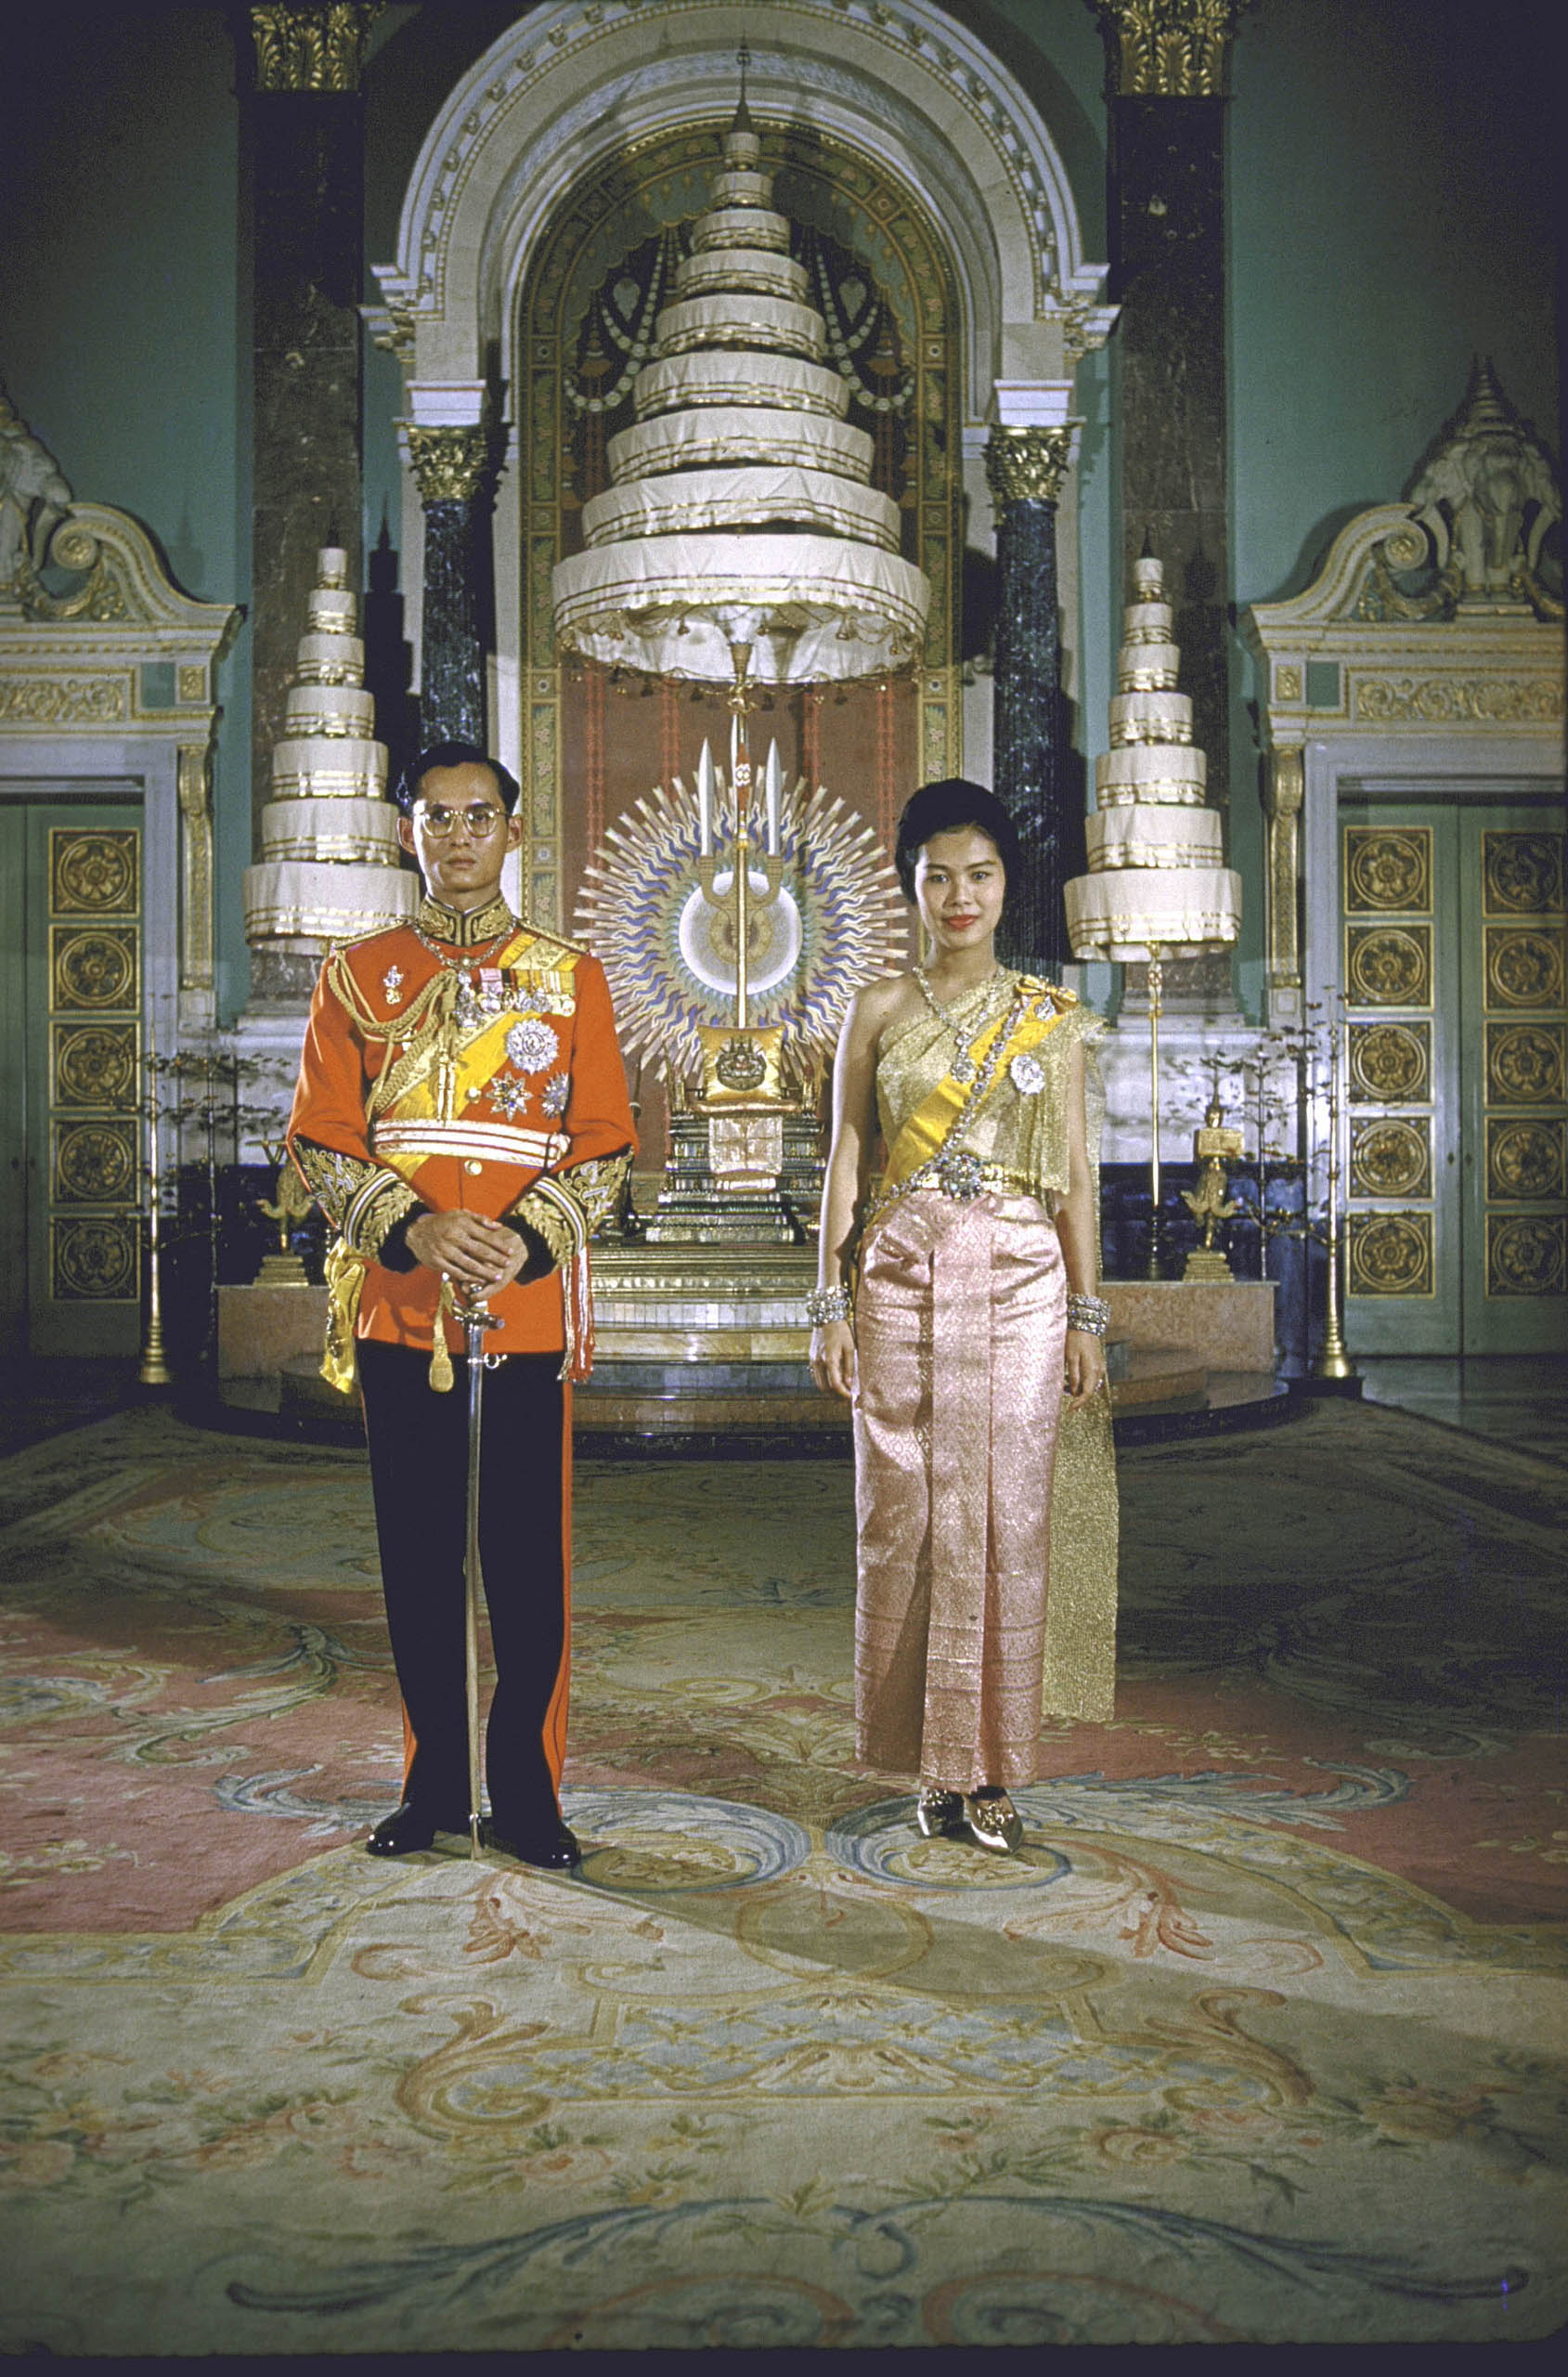 Formal portrait of King Bhumibol Adulyadej  and Queen Sirikit at the Palace in 1960. The nine-tiered parasol in the background is a symbol of the Chakri Dynasty.